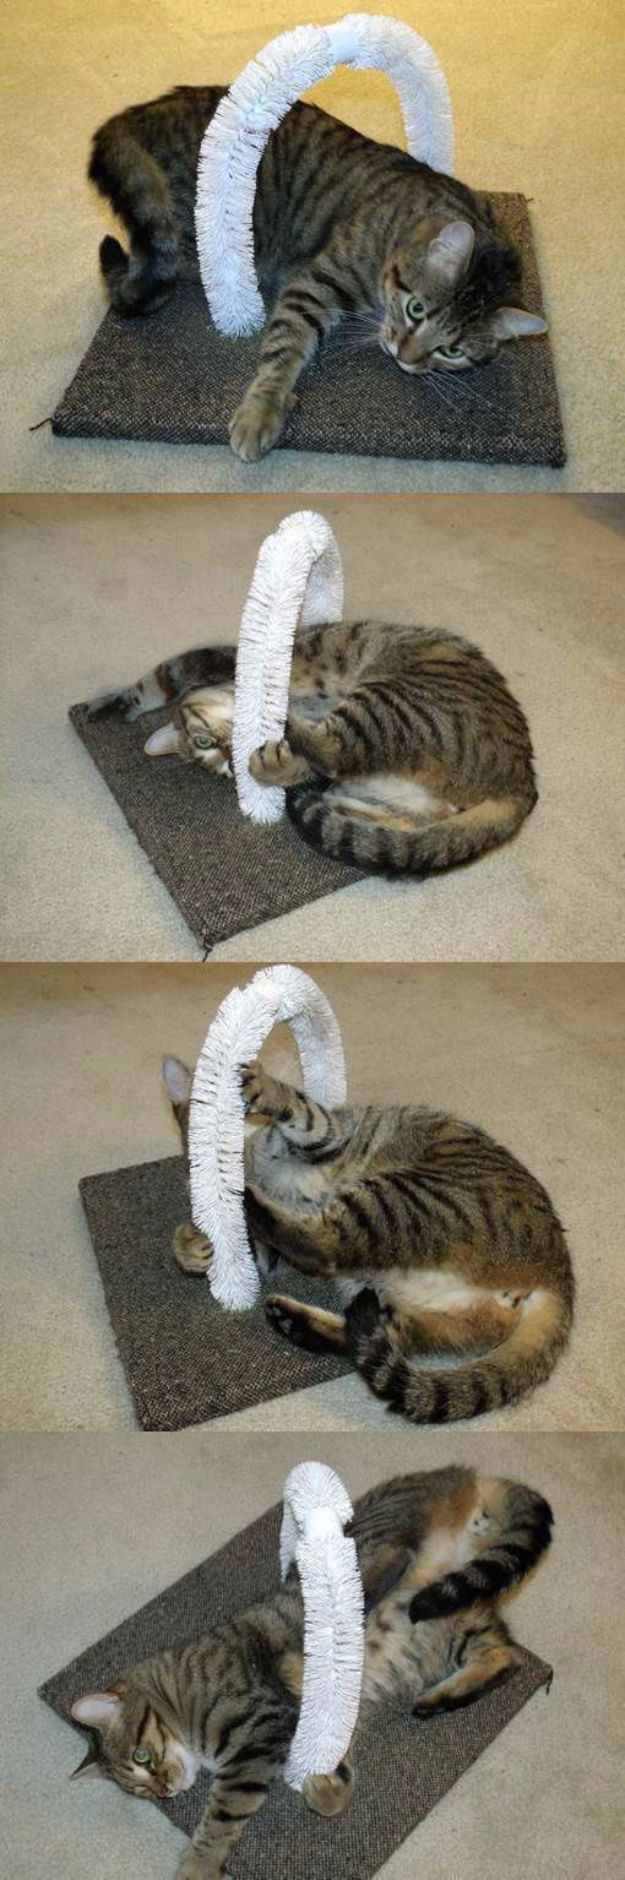 31 Brilliantly Clever Cat Hacks